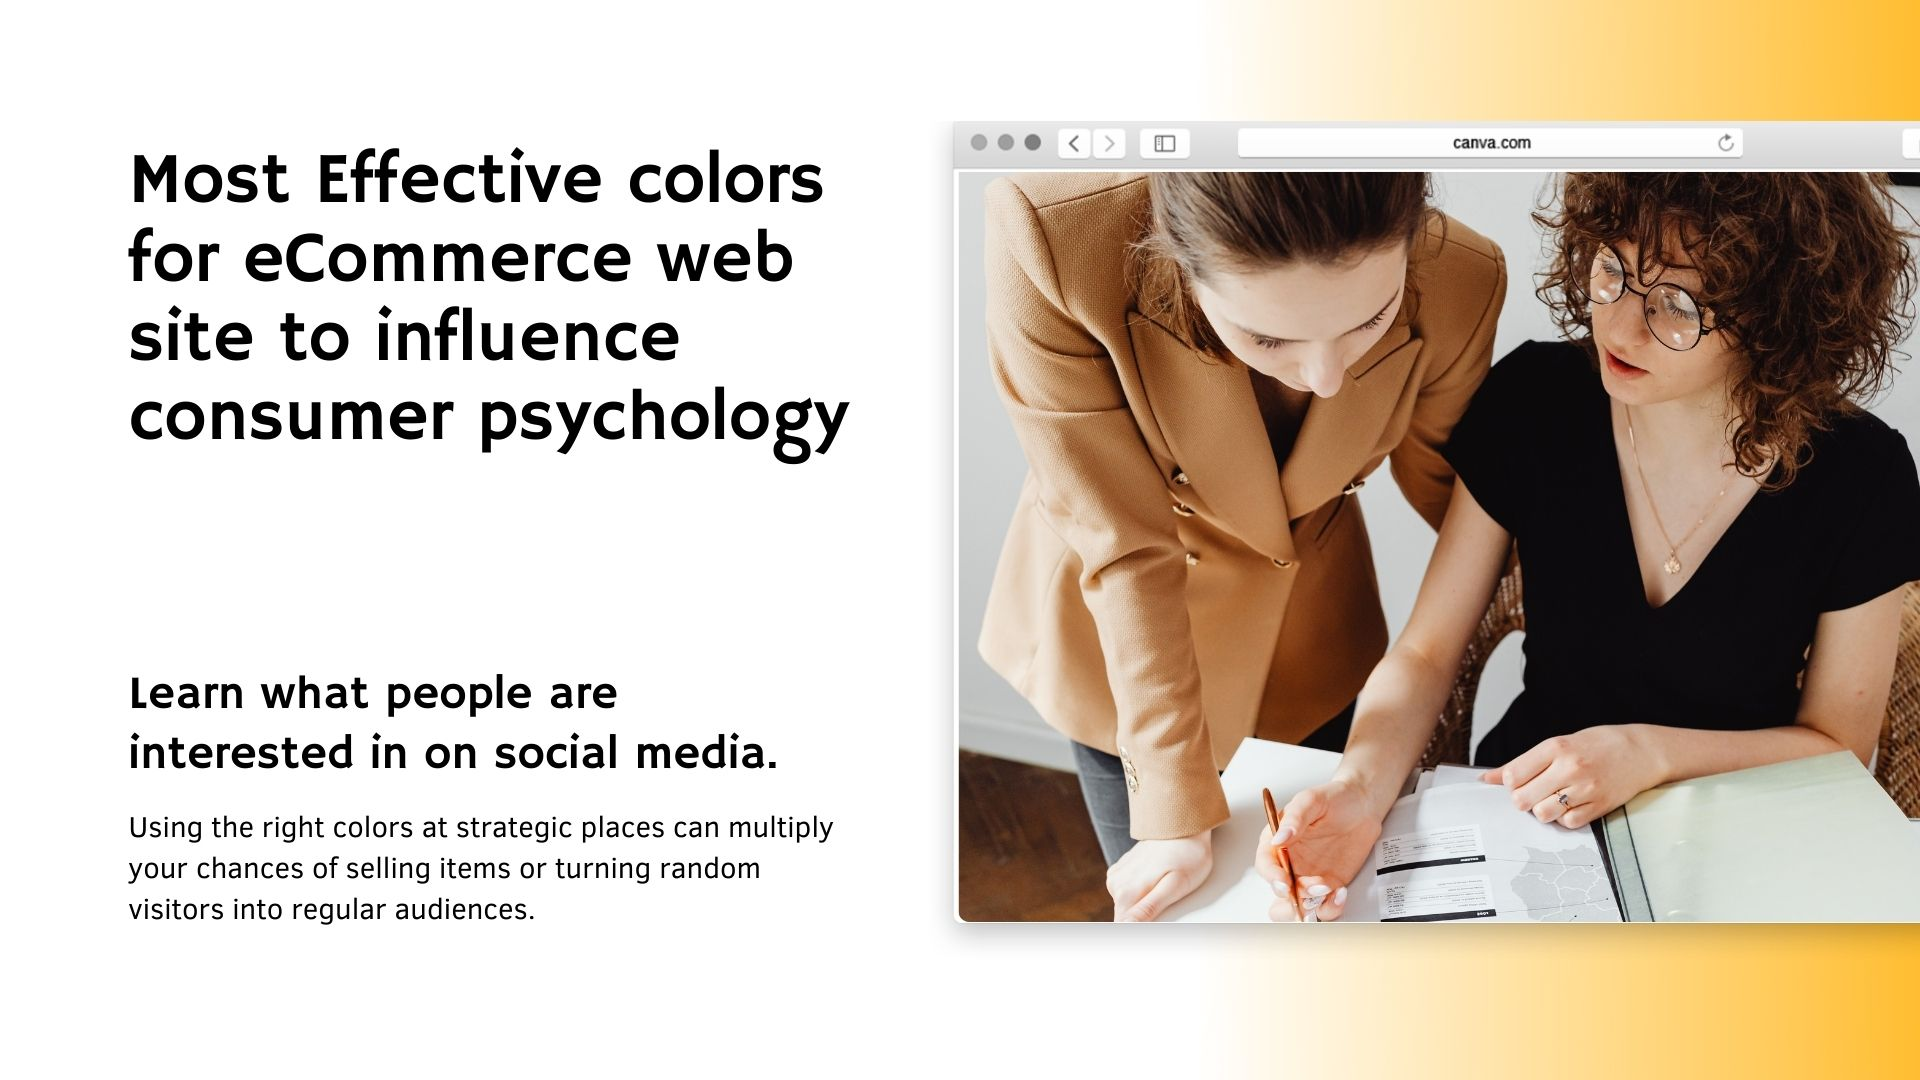 Effective-colors-for-ecommerce-site